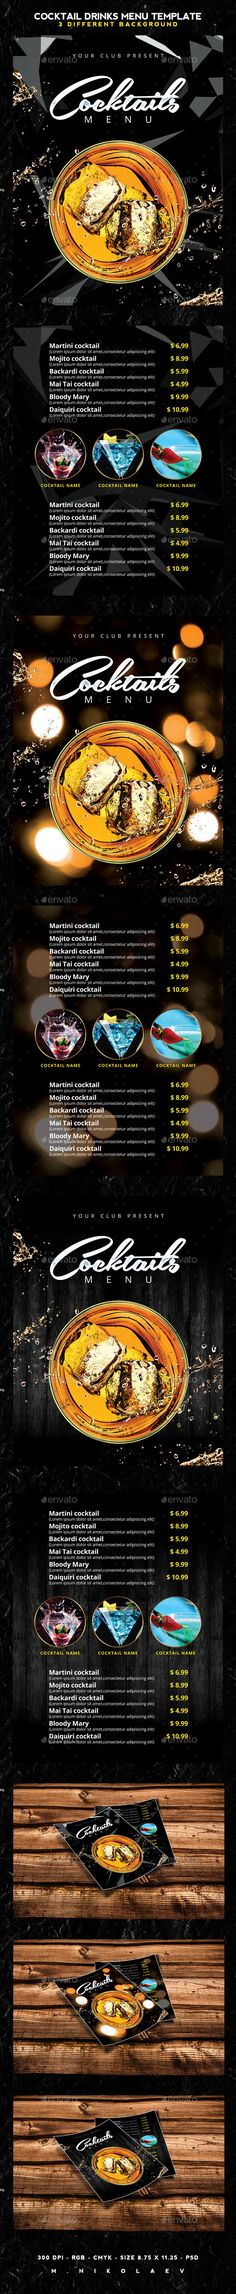 Cocktail Drinks Menu  PSD Template • Download ➝ https://graphicriver.net/item/cocktail-drinks-menu/12253324?ref=pxcr